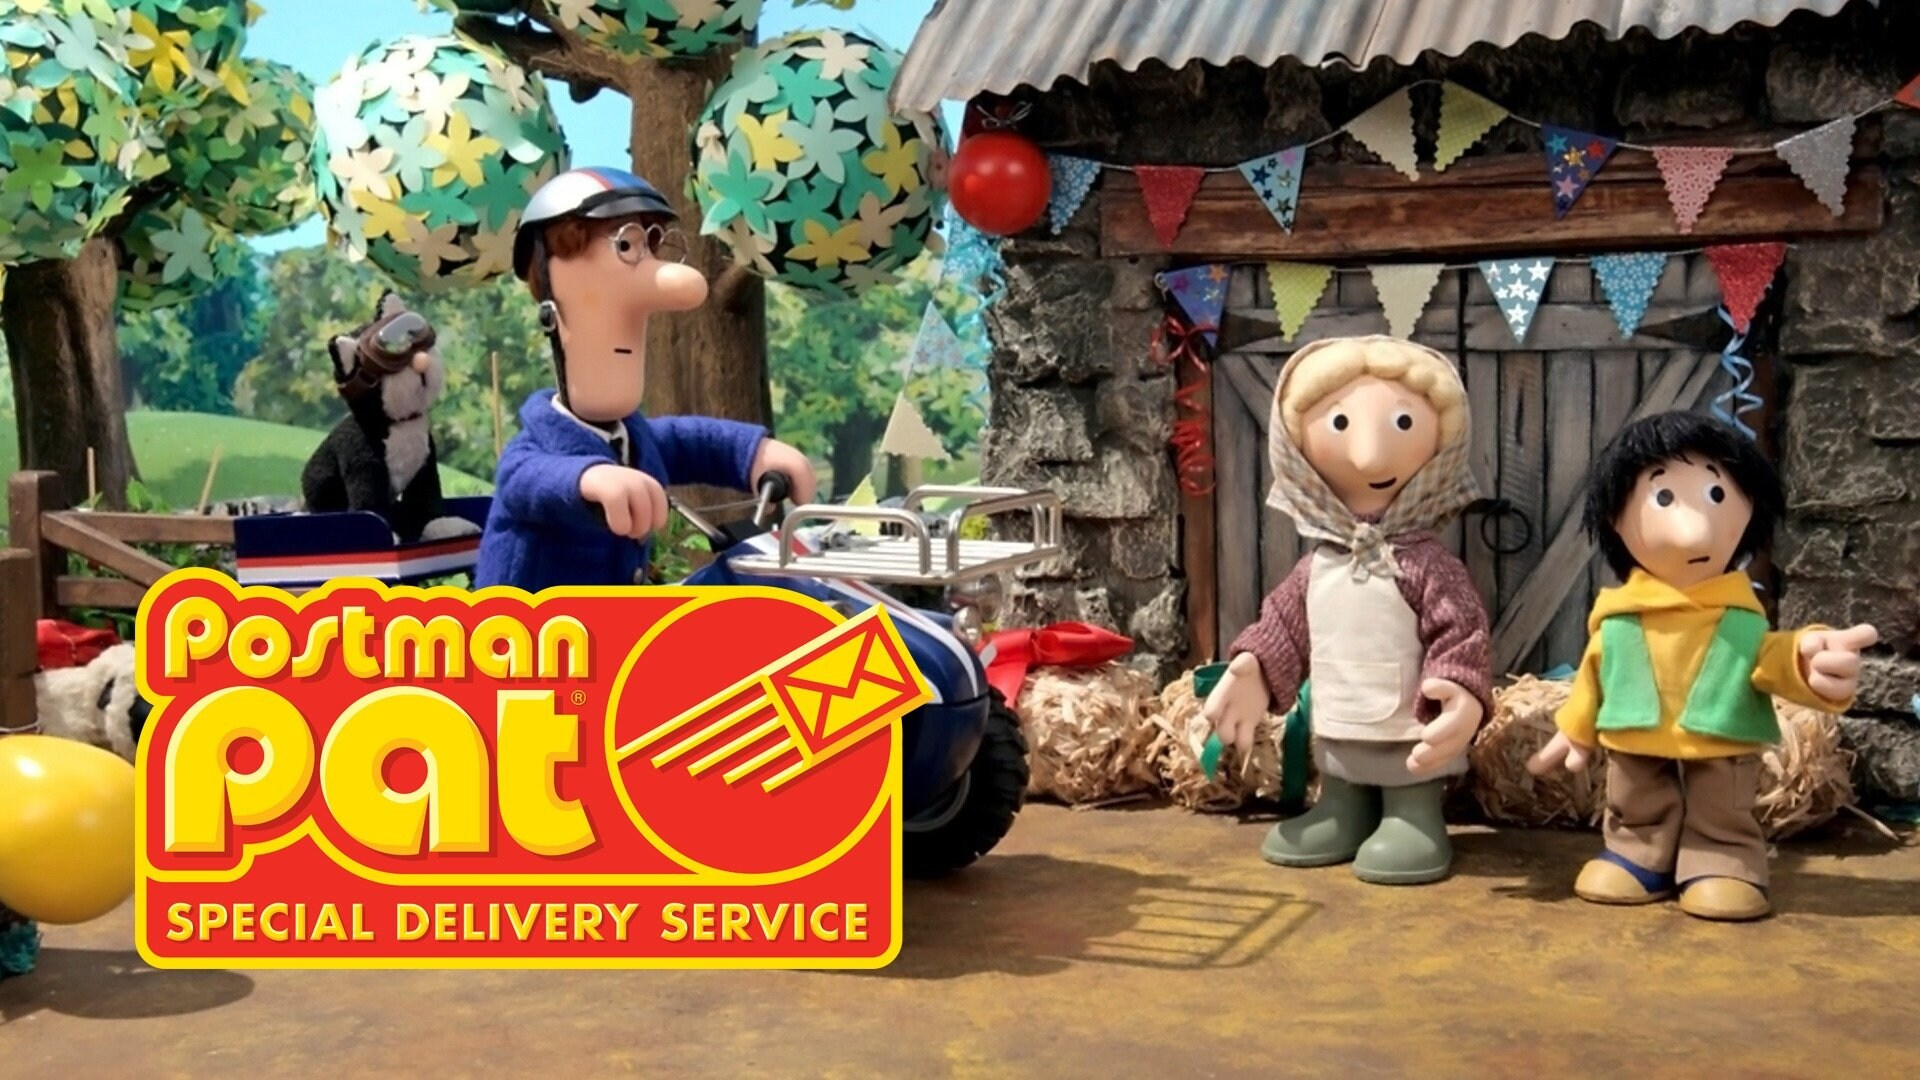 Postman Pat and the Scarecrow